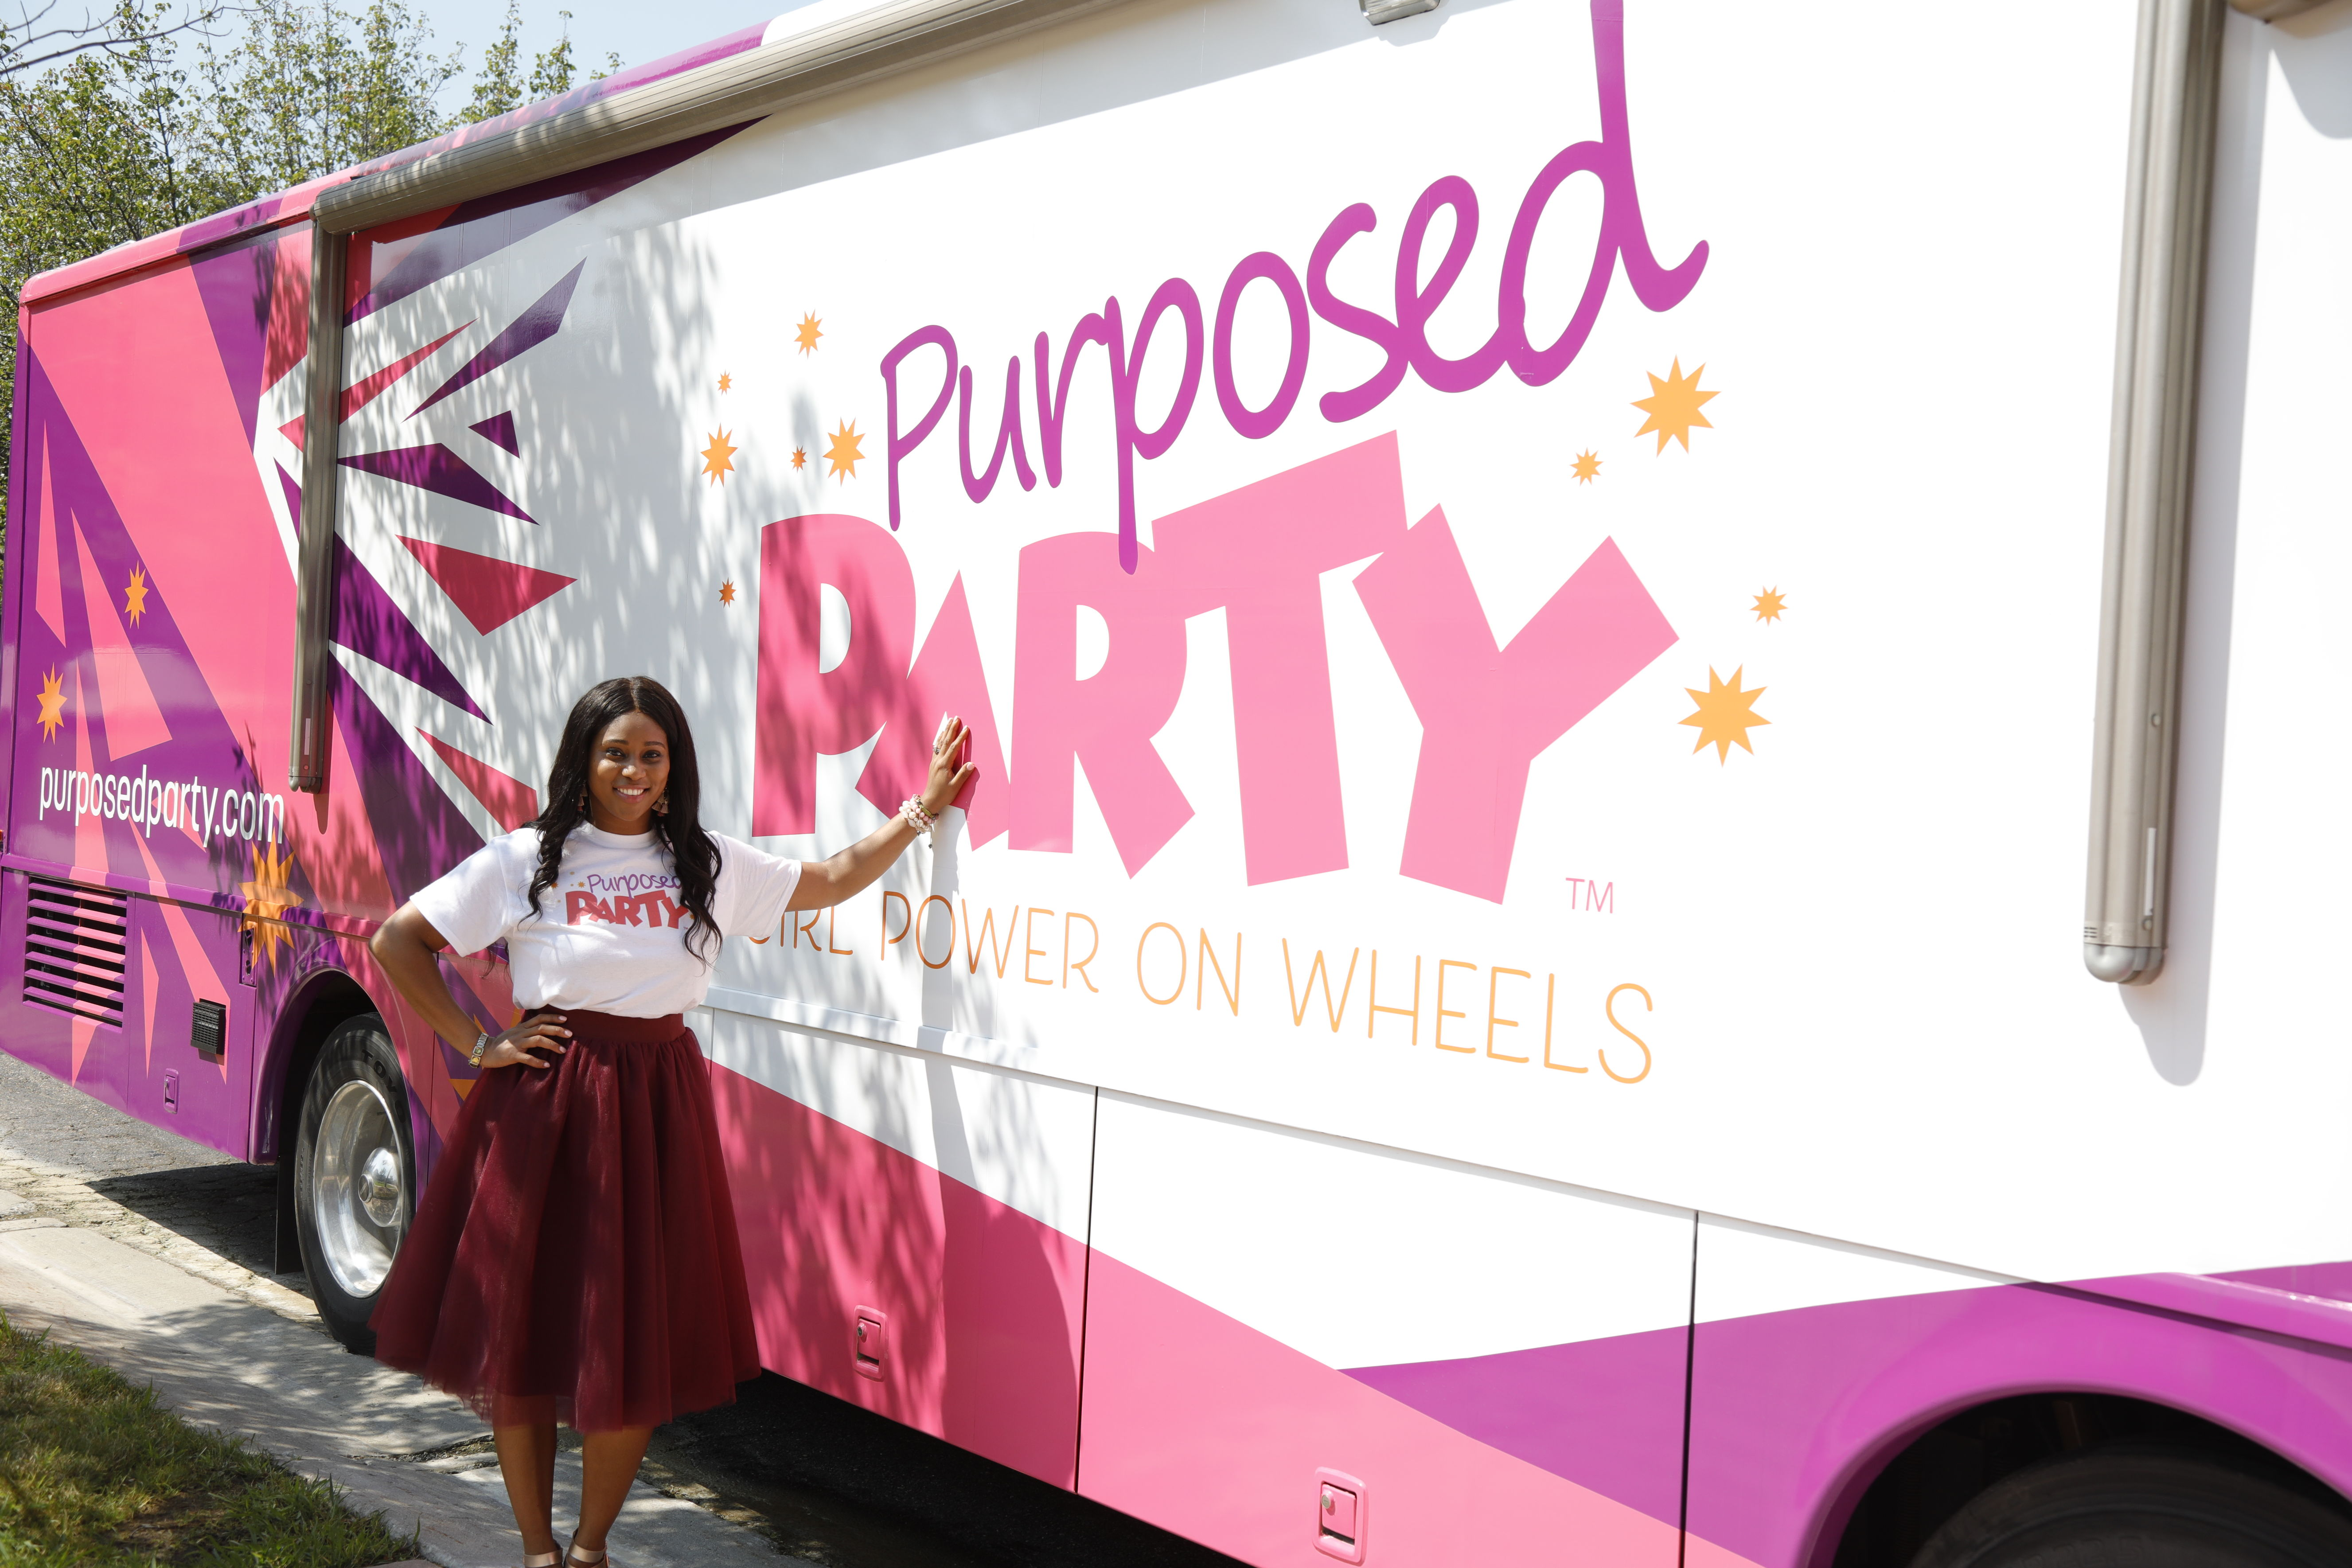 New party bus venture looks to empower girls, women